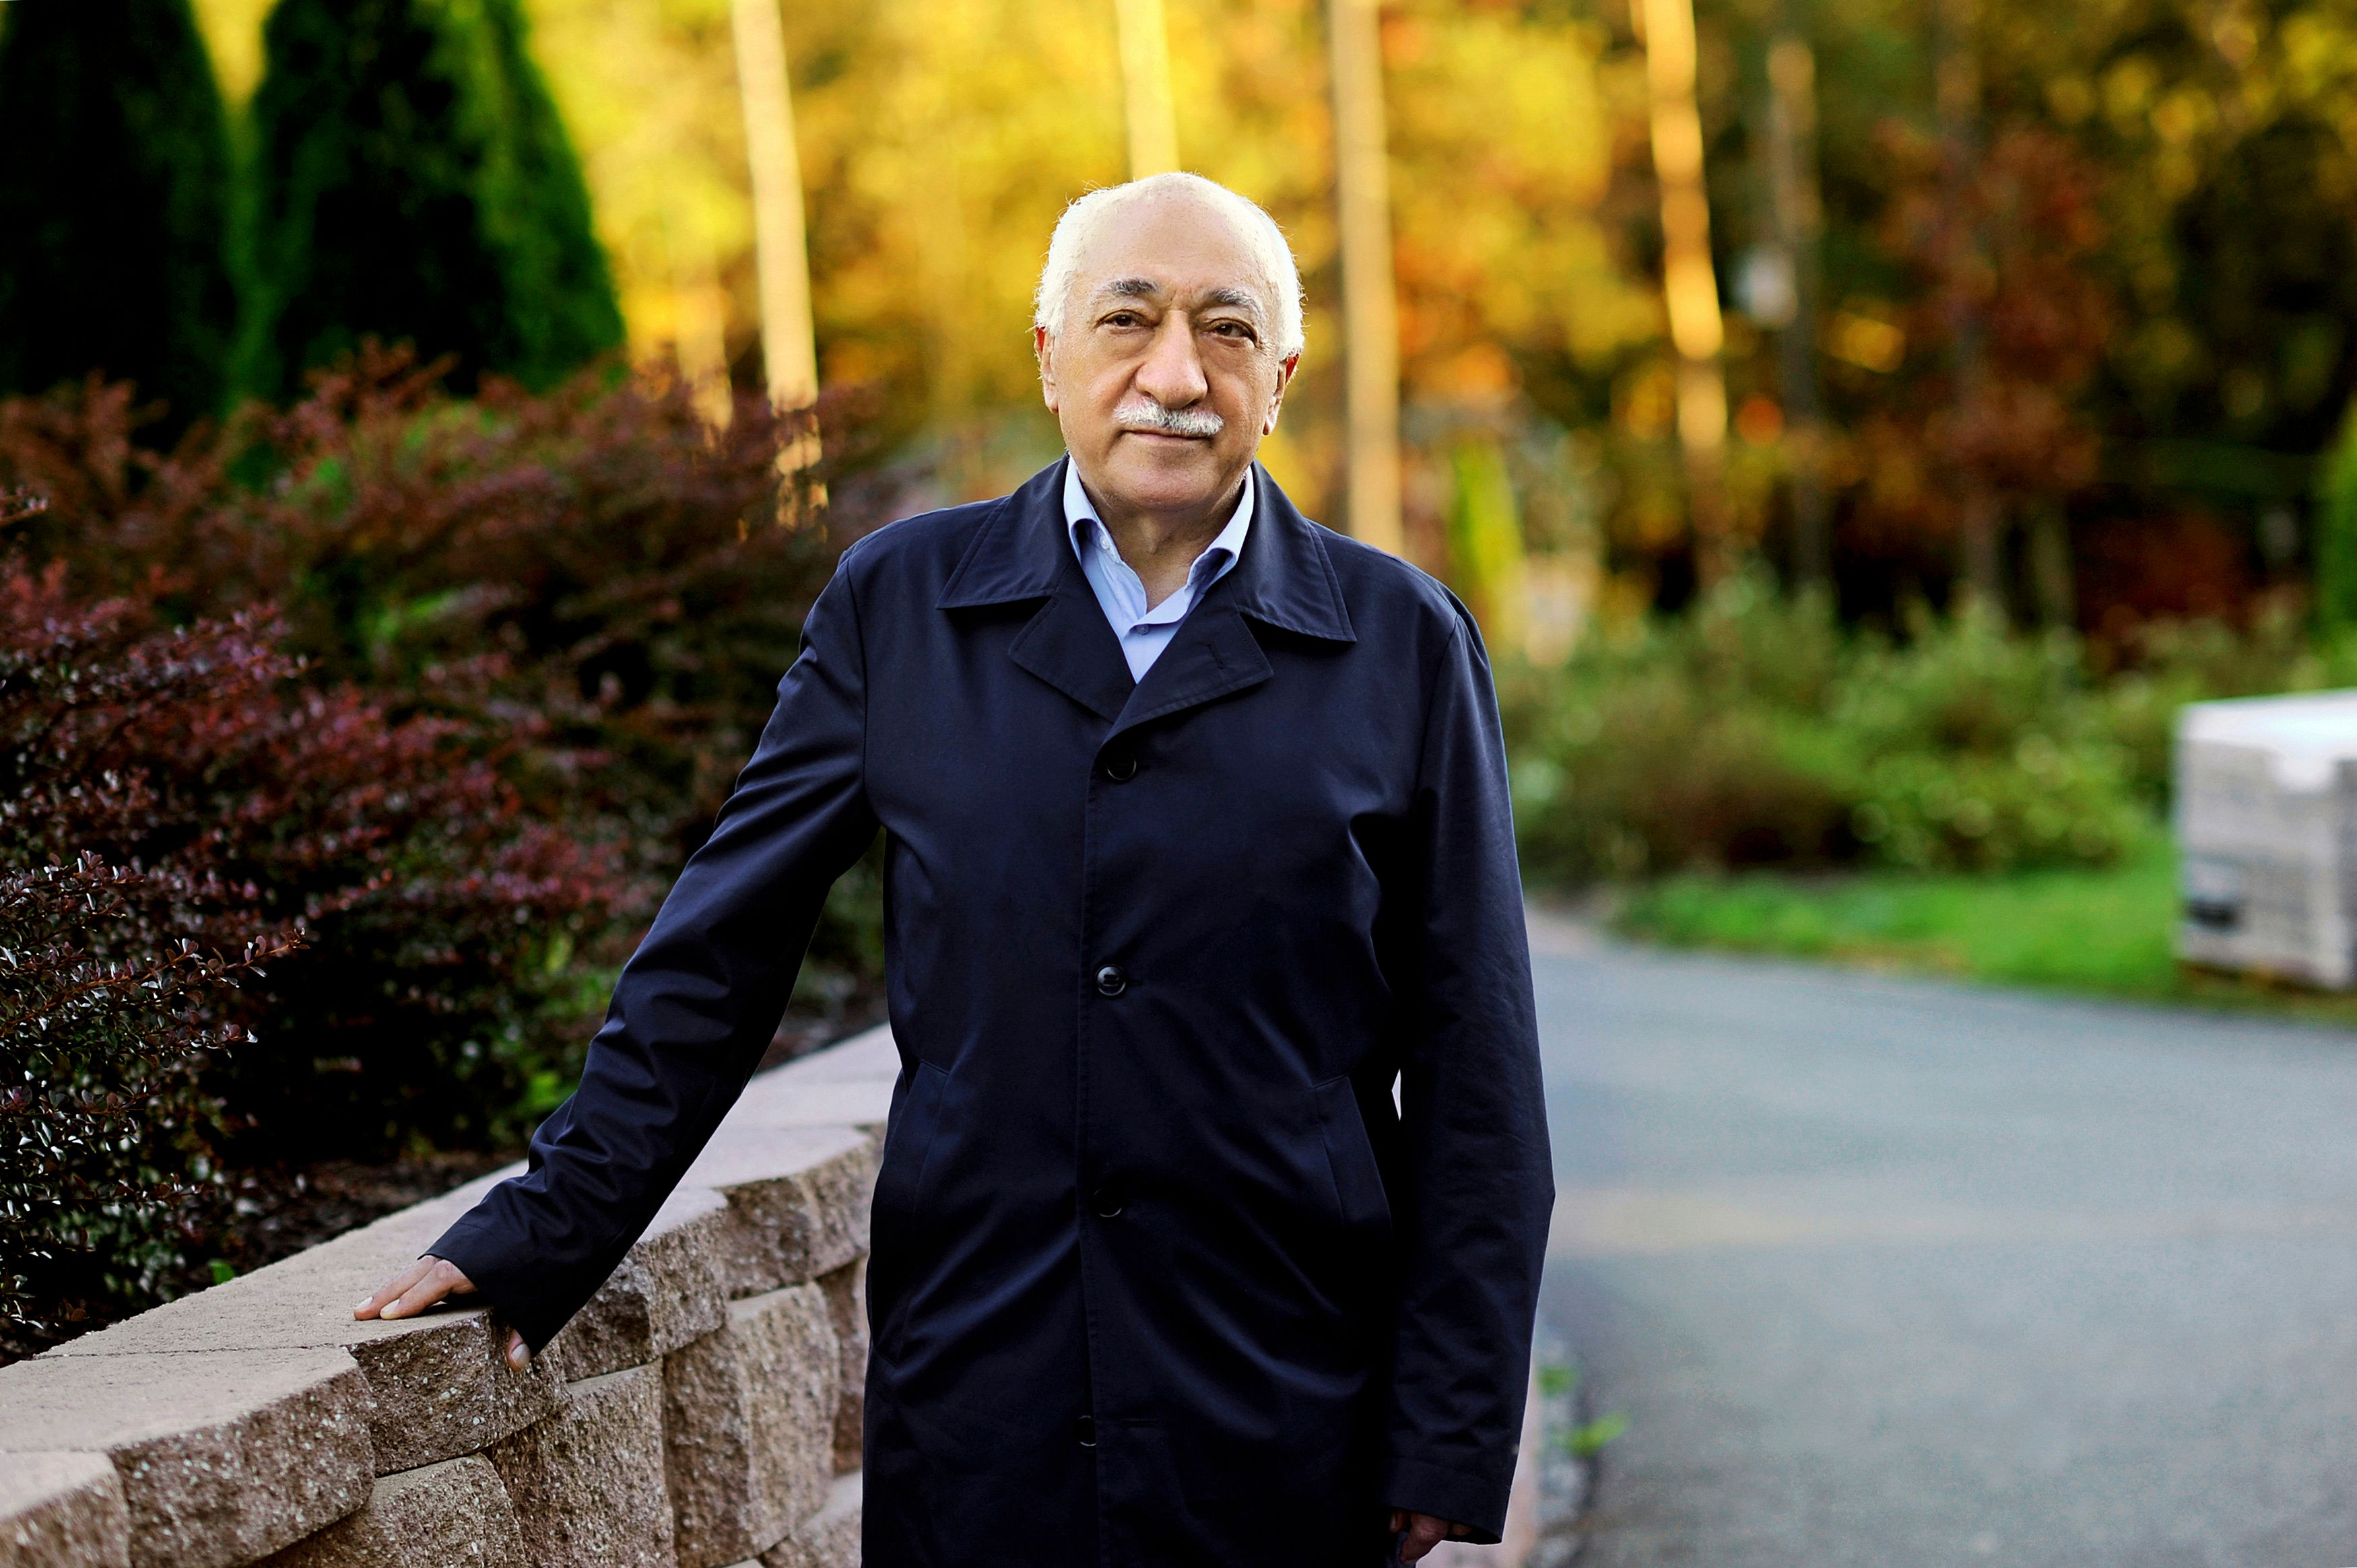 Islamic preacher Fethullah Gulen is pictured at his residence in Saylorsburg, Pennsylvania September 24, 2013. Born in Erzurum, eastern Turkey, Gulen built up his reputation as a Muslim preacher with intense sermons that often moved him to tears. From his base in Izmir, he toured Turkey stressing the need to embrace scientific progress, shun radicalism and build bridges to the West and other faiths. The first Gulen school opened in 1982. In the following decades, the movement became a spectacular success, setting up hundreds of schools that turned out generations of capable graduates, who gravitated to influential jobs in the judiciary, police, media, state bureaucracy and private business. Picture taken September 24, 2013. To match Insight TURKEY-ERDOGAN/GULEN   REUTERS/Selahattin Sevi/Zaman Daily via Cihan News Agency (UNITED STATES  - Tags: POLITICS RELIGION)    ATTENTION EDITORS - THIS IMAGE WAS PROVIDED BY A THIRD PARTY. FOR EDITORIAL USE ONLY. NOT FOR SALE FOR MARKETING OR ADVERTISING CAMPAIGNS. THIS PICTURE IS DISTRIBUTED EXACTLY AS RECEIVED BY REUTERS, AS A SERVICE TO CLIENTS. TURKEY OUT. NO COMMERCIAL OR EDITORIAL SALES IN TURKEY